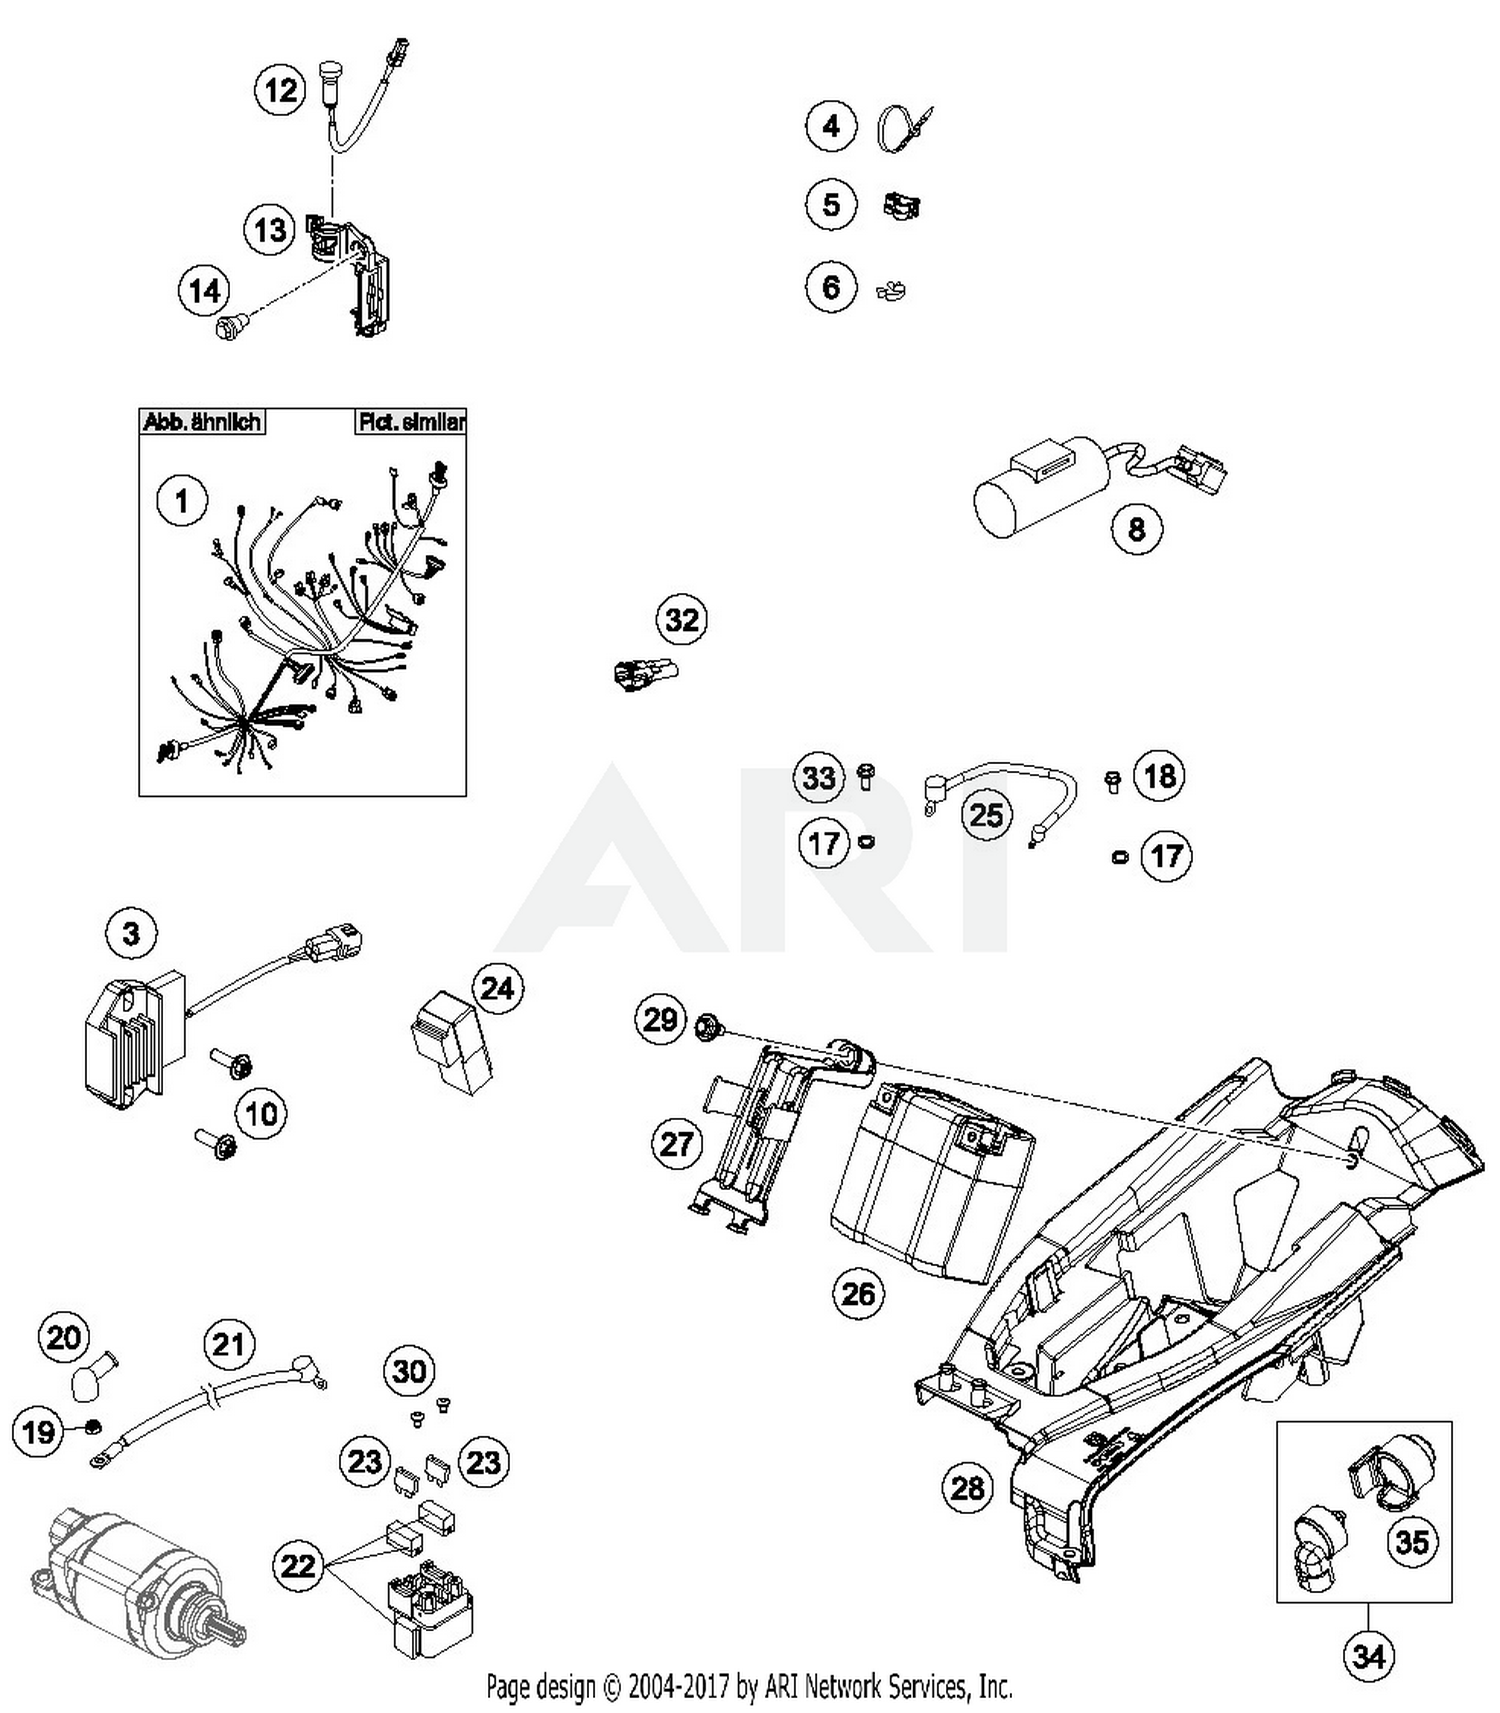 2016 Husqvarna Fc 450 Wiring Harness Parts Best Oem System Diagram For Motorcycles